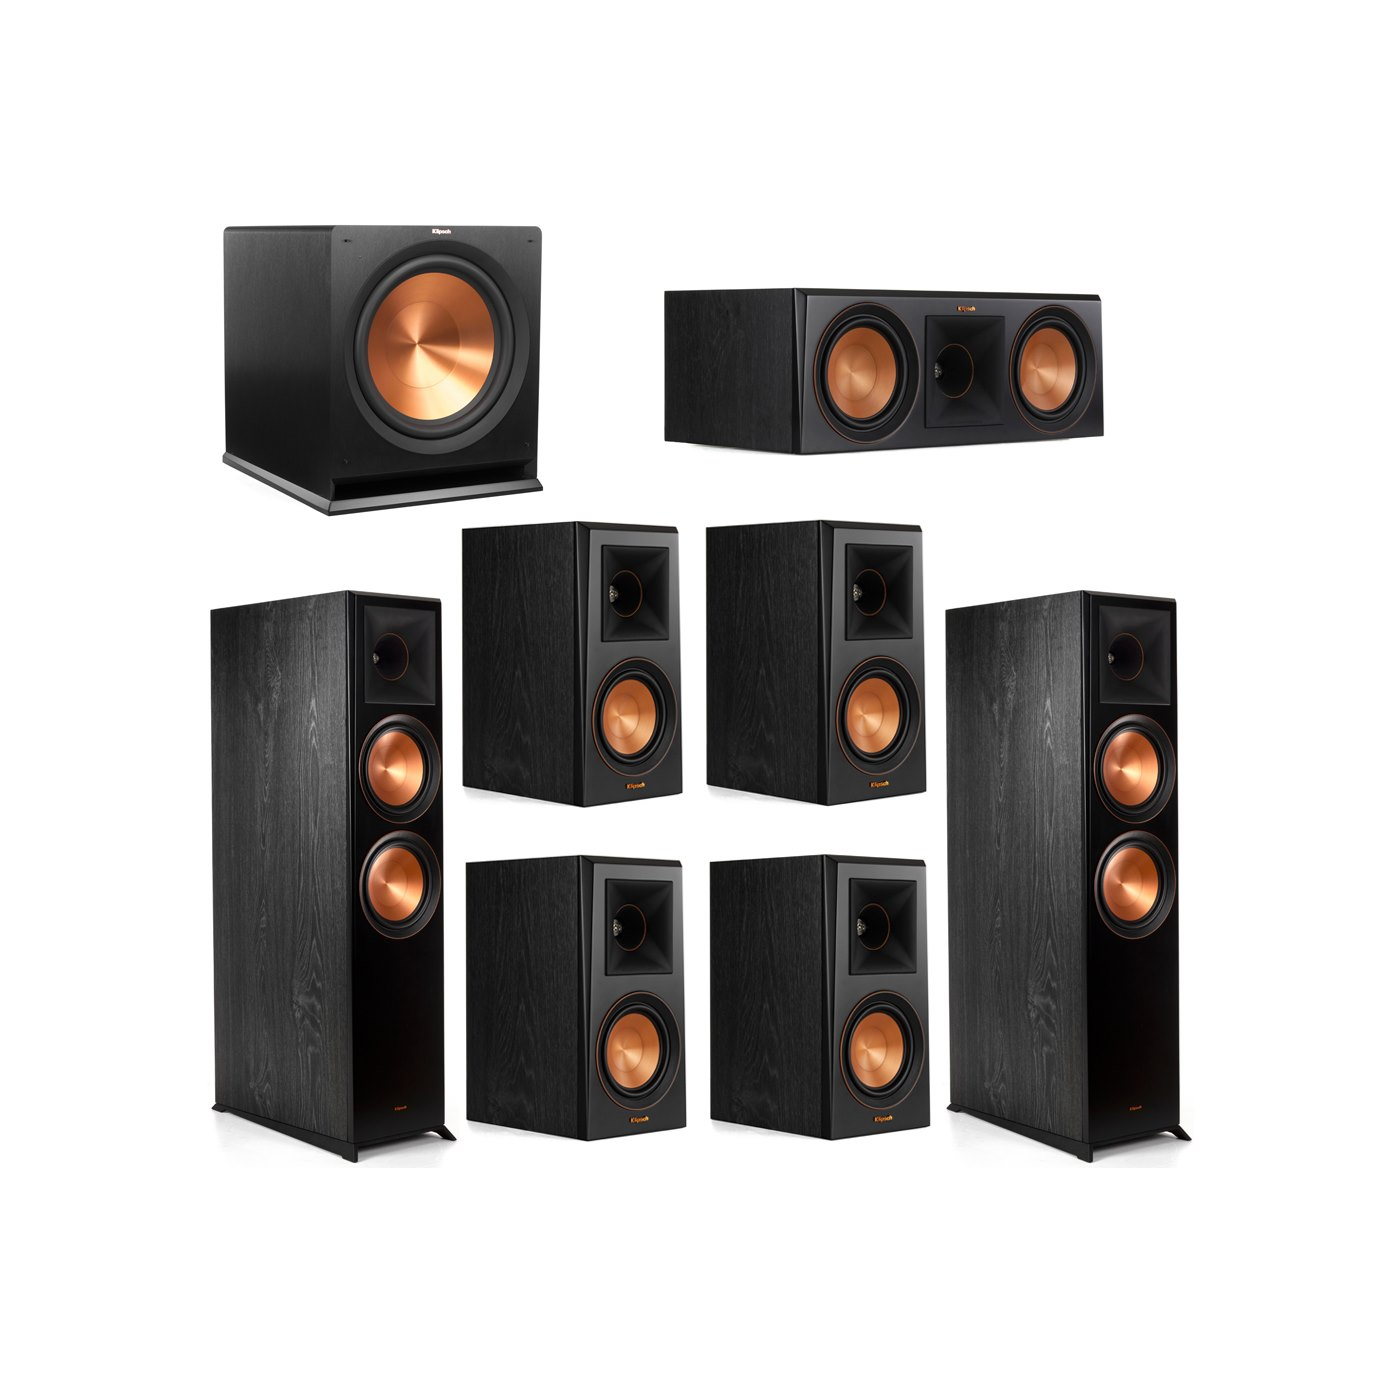 Klipsch 7.1 System with 2 RP-8000F Floorstanding Speakers, 1 Klipsch RP-600C Center Speaker, 4 Klipsch RP-500M Surround Speakers, 1 Klipsch R-115SW Subwoofer